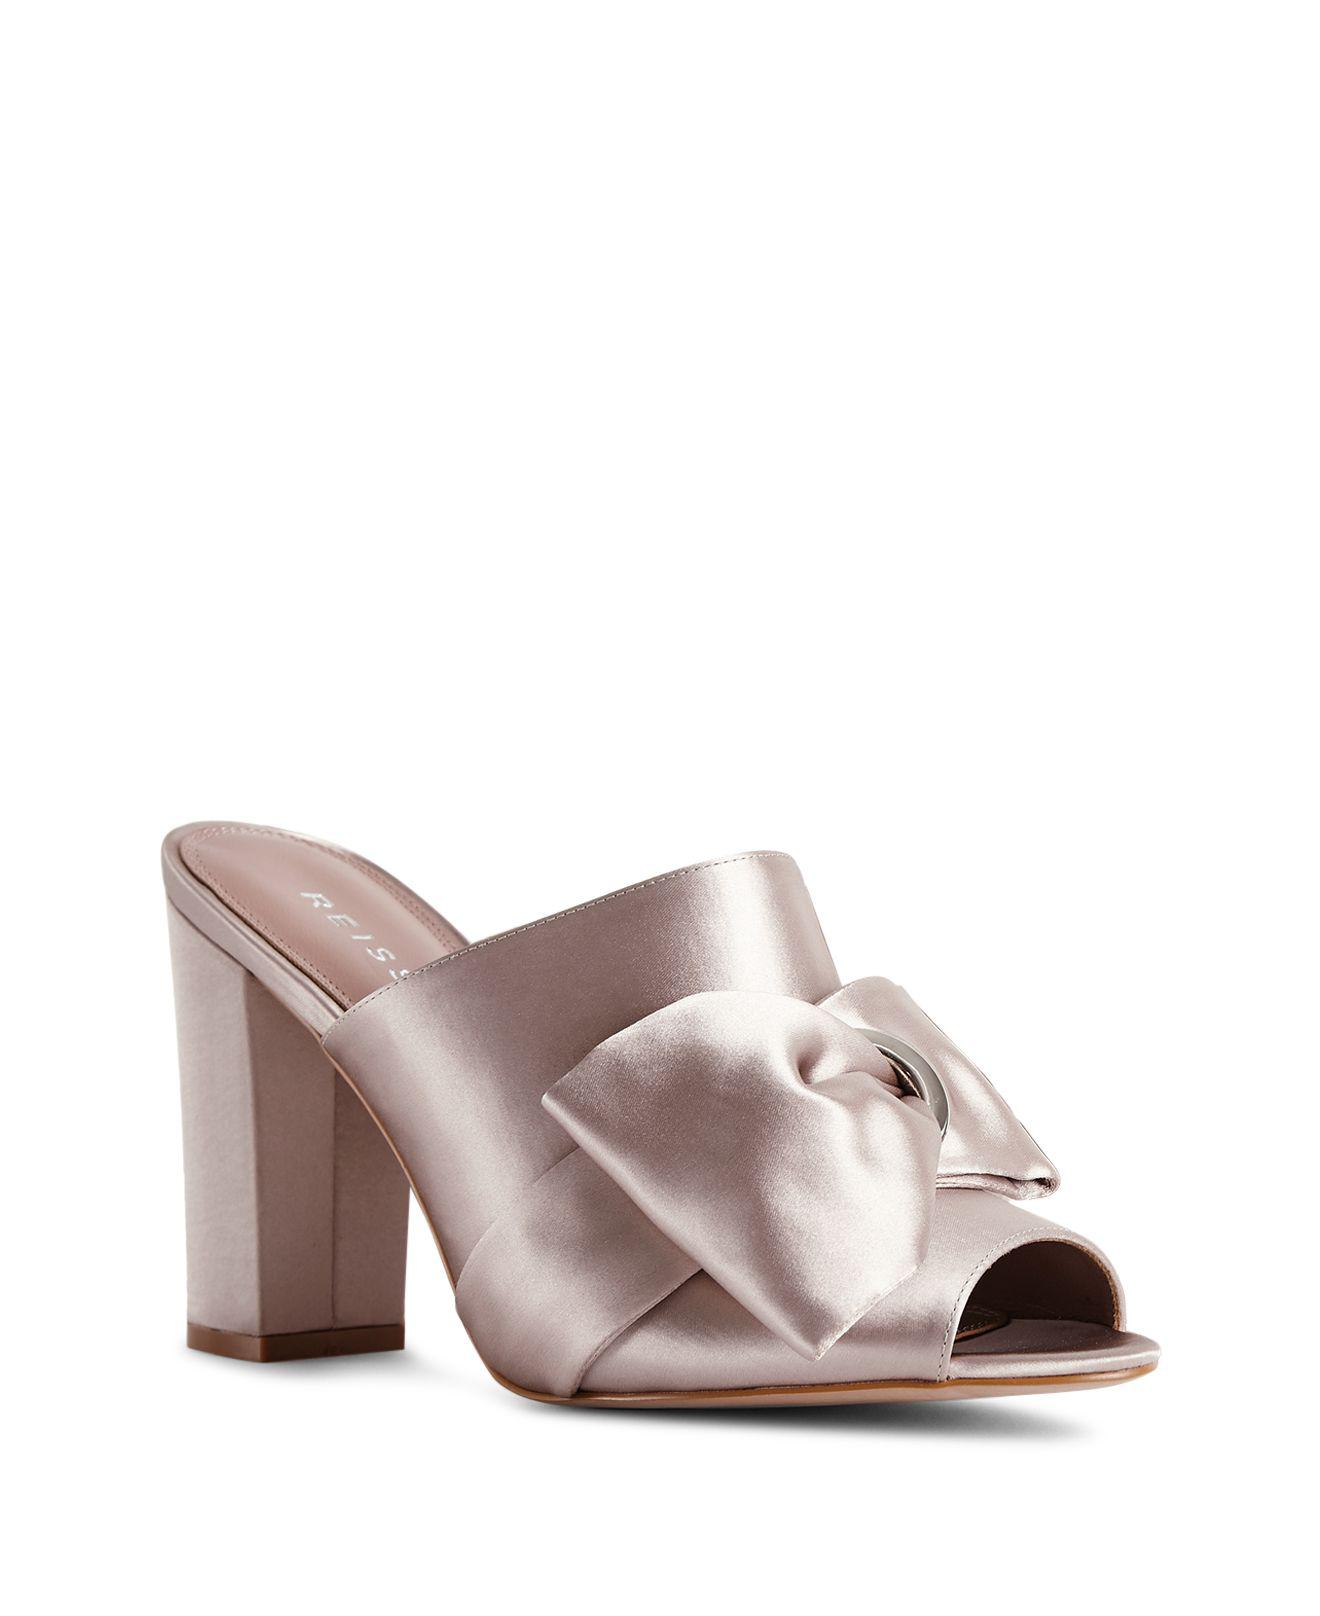 Reiss Women's Molly Bow-Detail Satin Slide Sandals Free Shipping Affordable Cheap Buy Authentic pPTdj3p